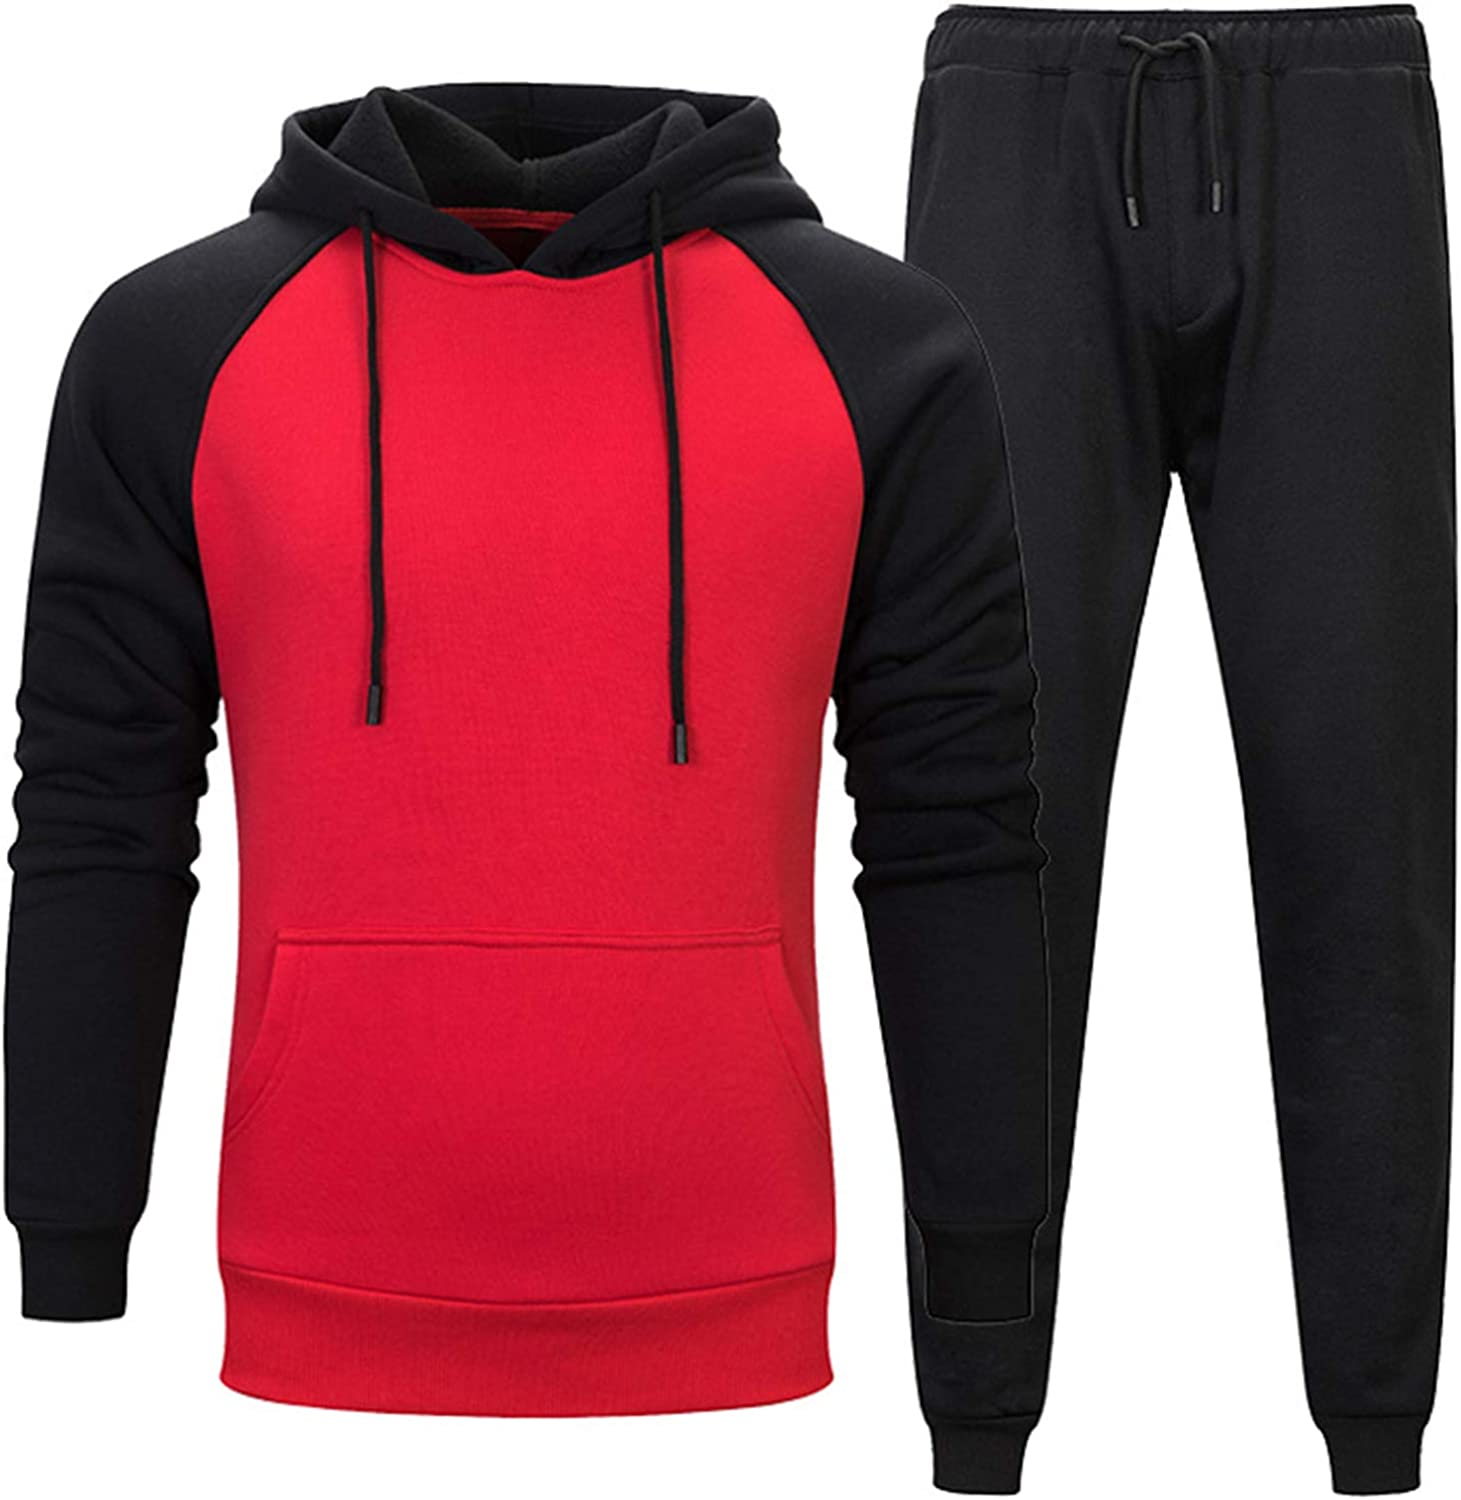 Mens Sweatsuits 2 Piece Tracksuit Wear Outfits Max 58% OFF Inventory cleanup selling sale Set Sport Athleti